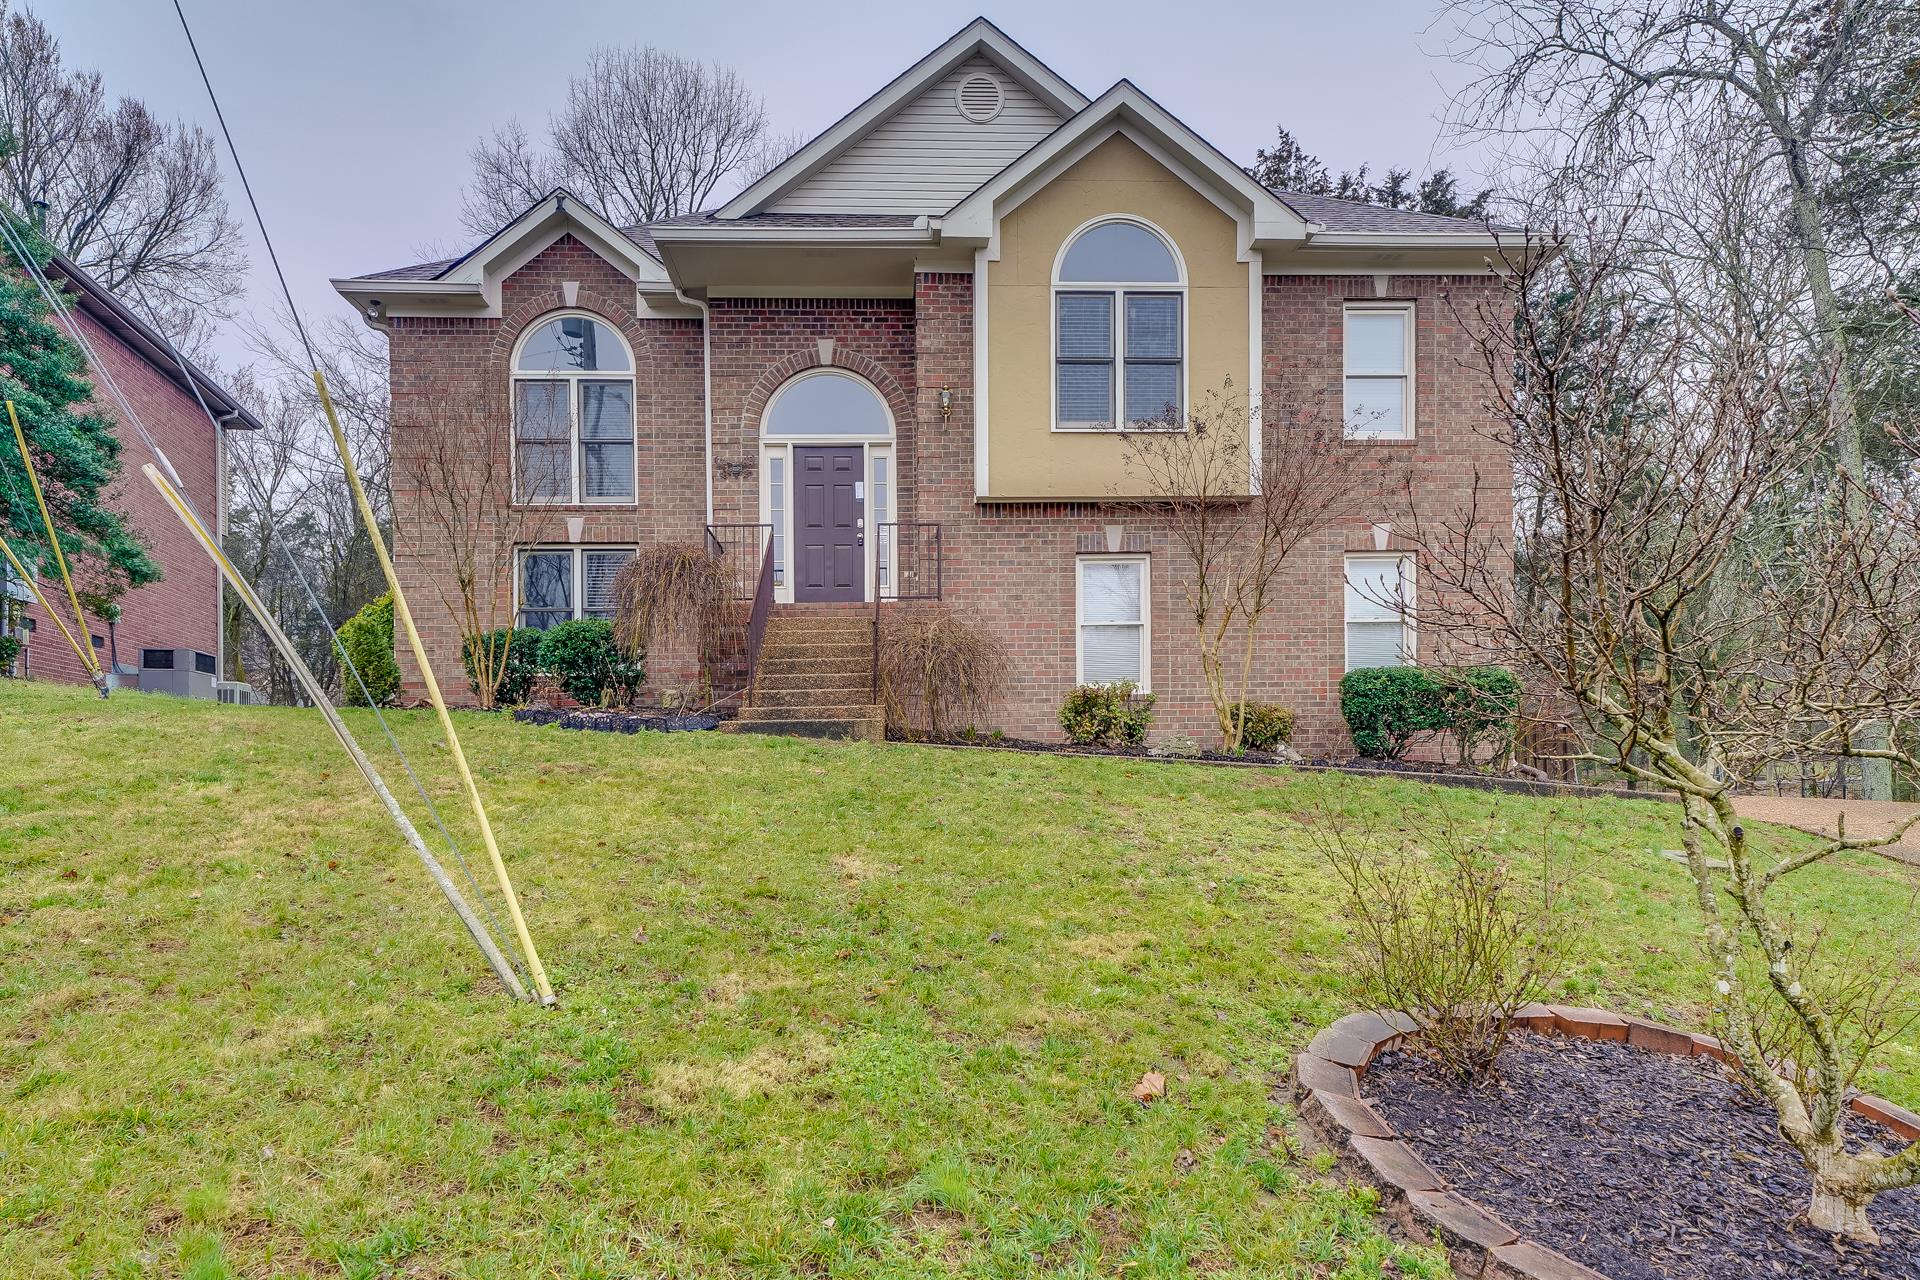 4900 Tulip Grove Ln 37076 - One of Hermitage Homes for Sale